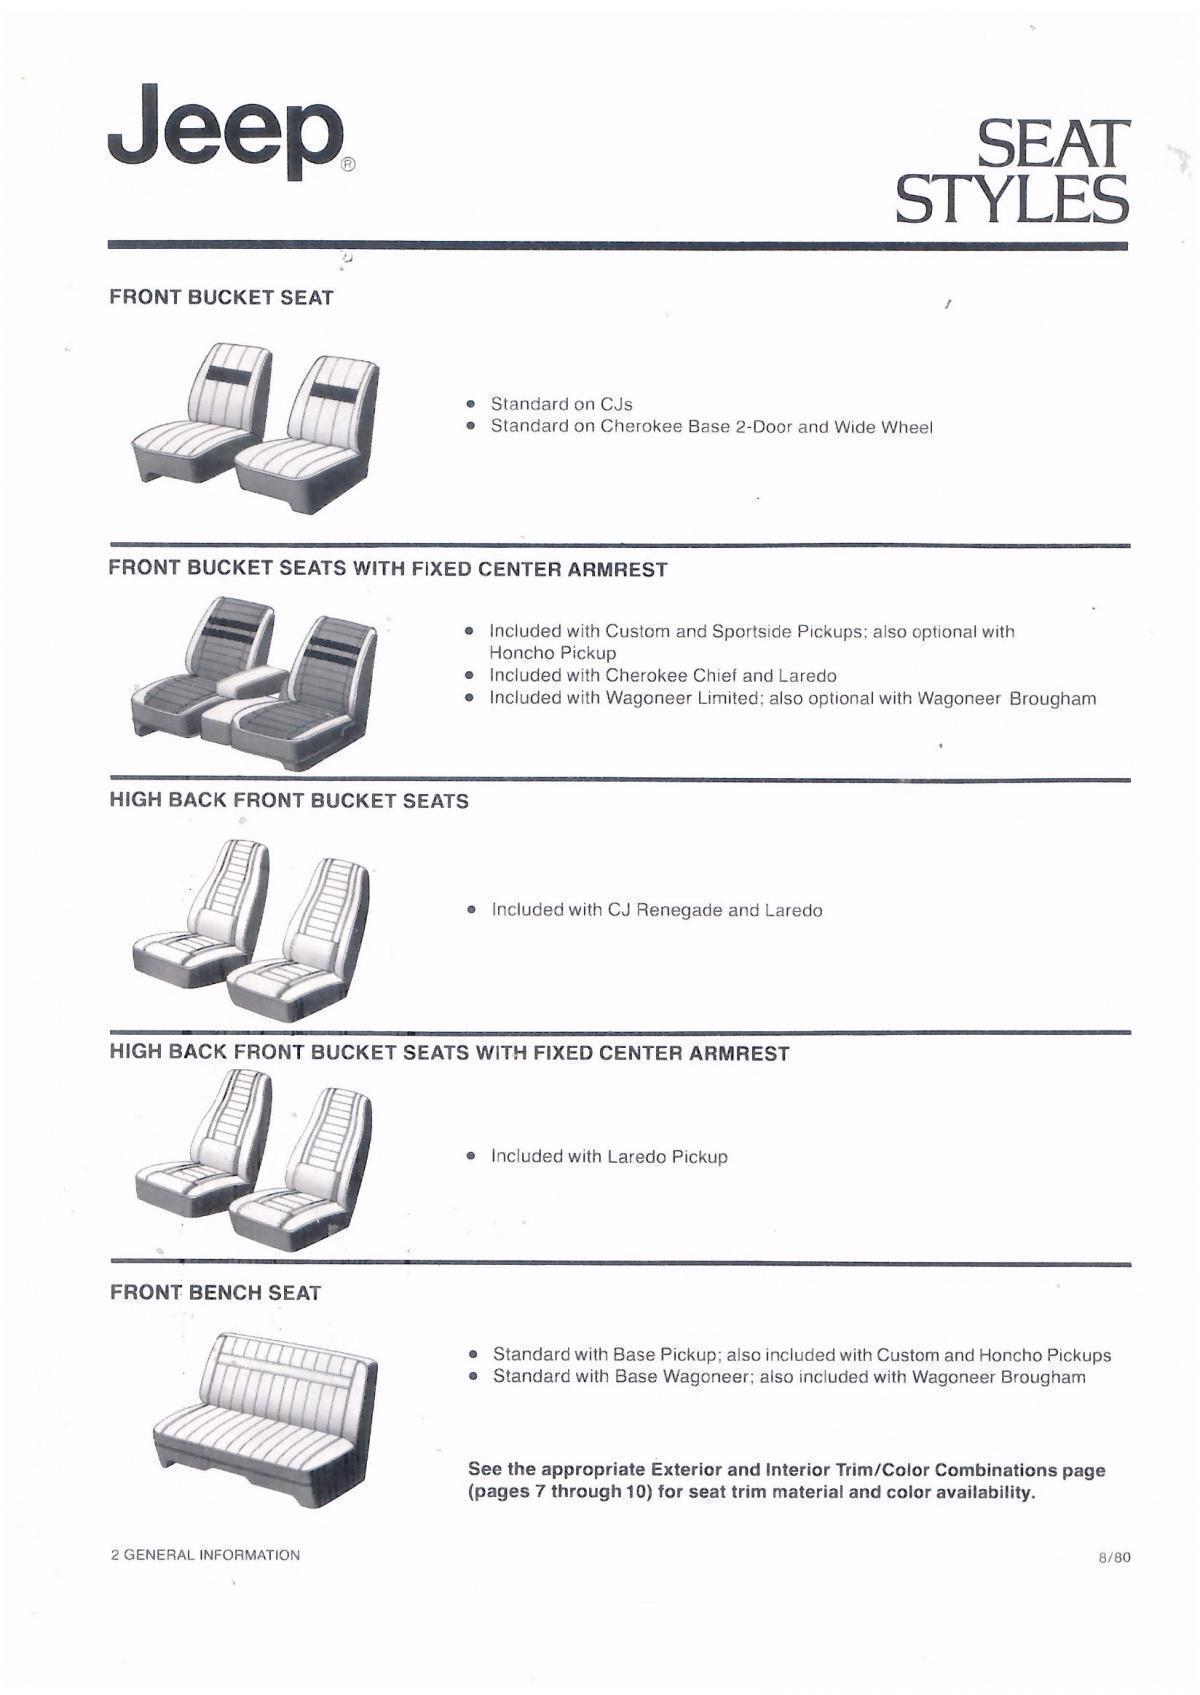 1981-jeep-seat-trims